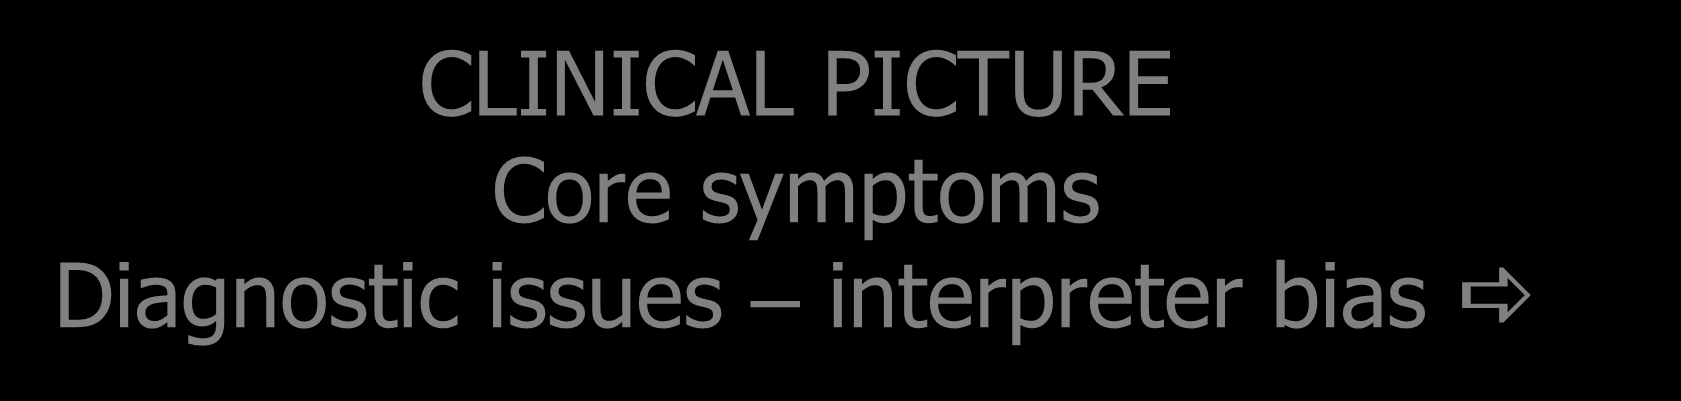 CLINICAL PICTURE Core symptoms Diagnostic issues interpreter bias a Phrasing of core symptoms Interpretation of words such as often